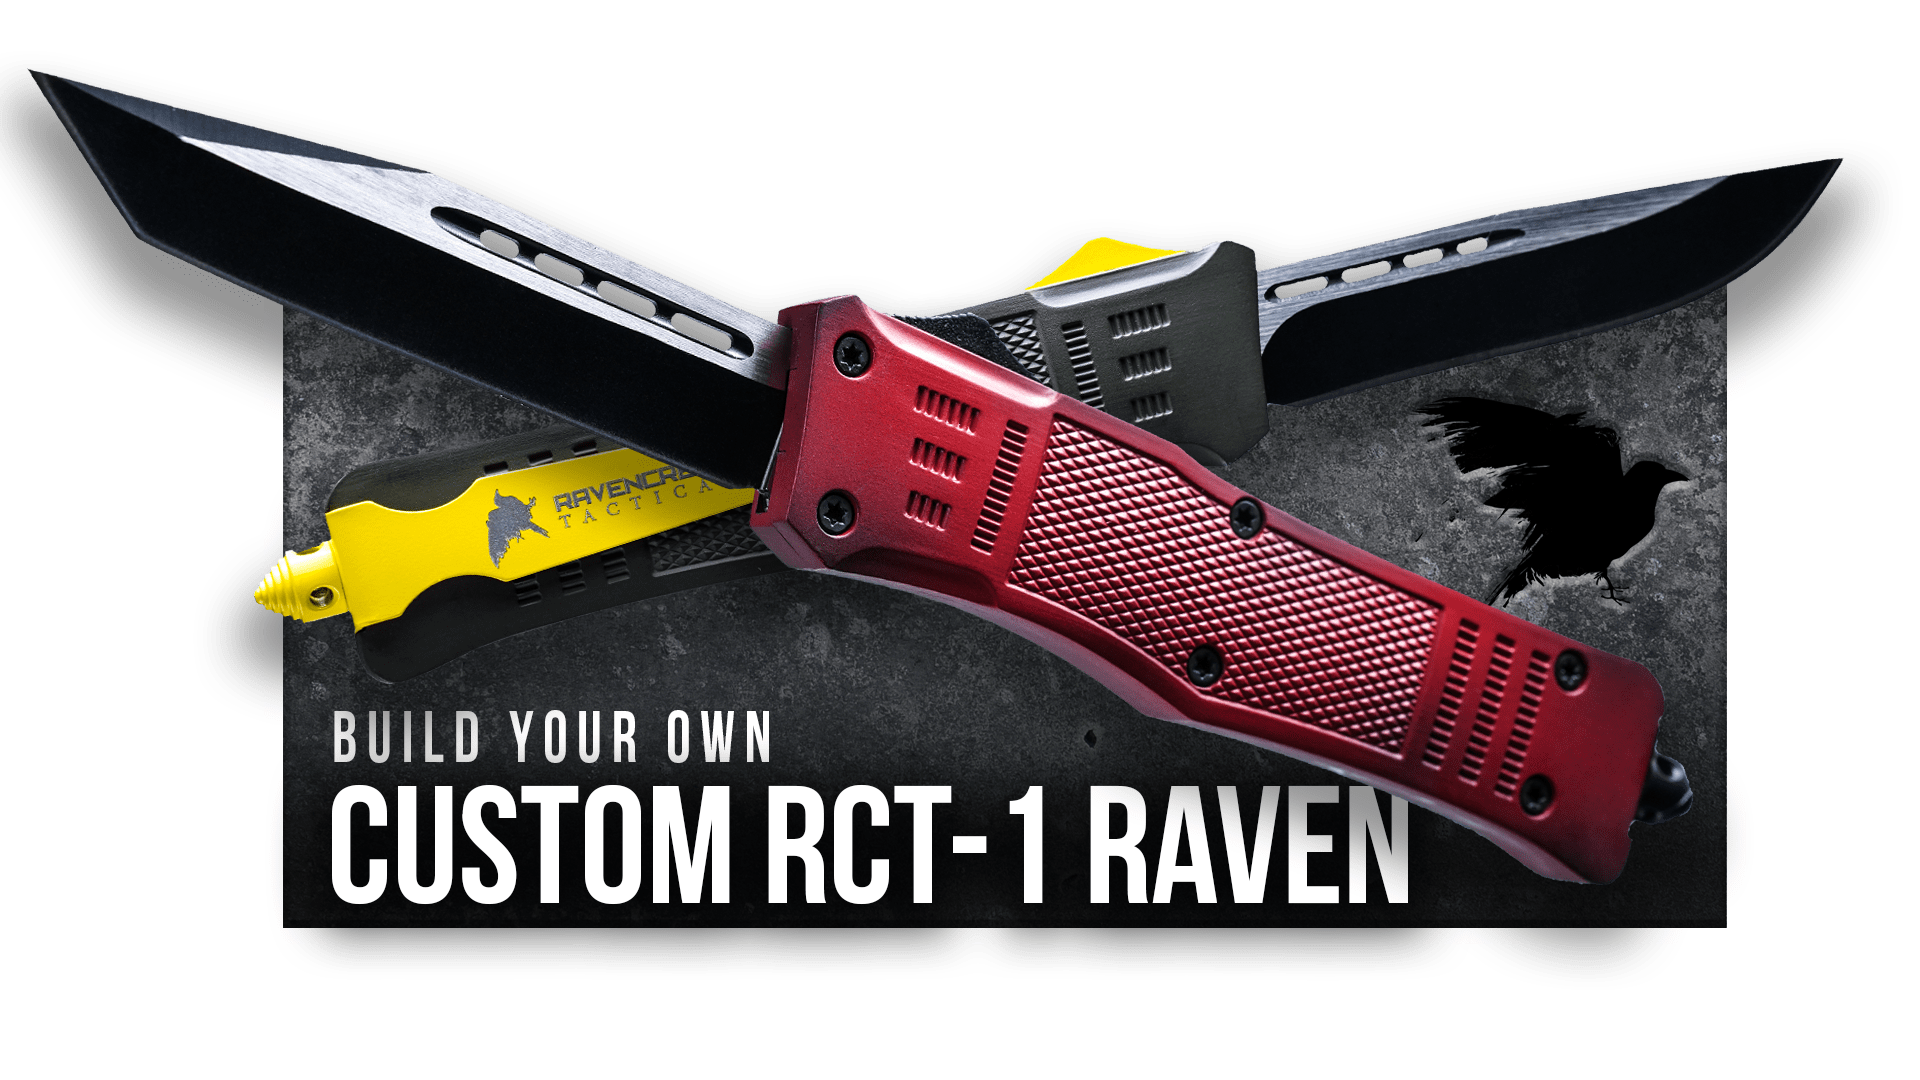 Build Your Own - RCT-1 Raven OTF Knife